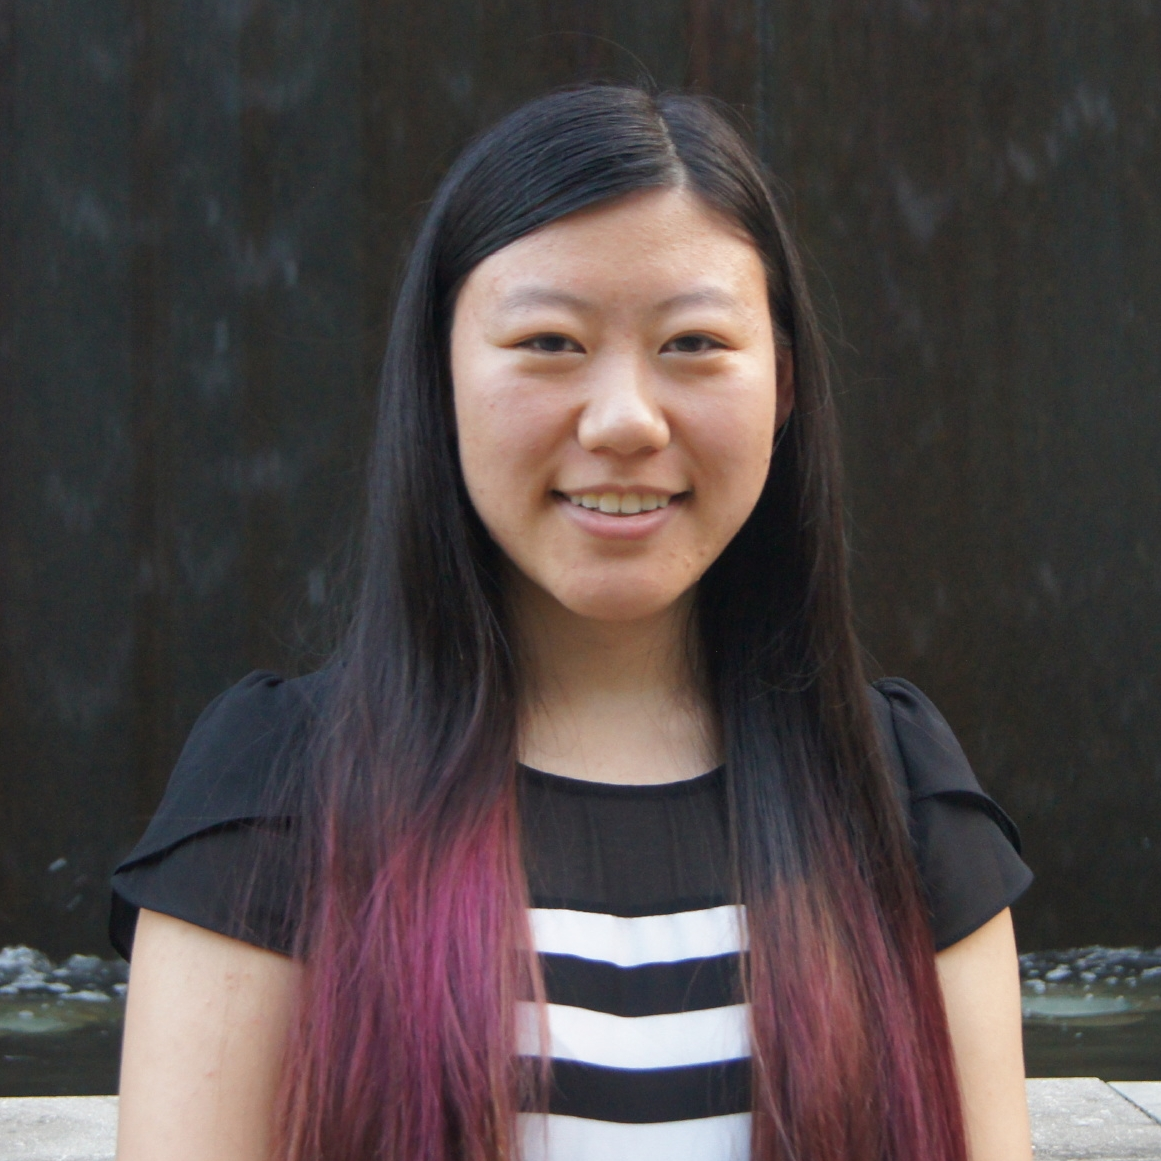 Fei Ma - VP Science    Contact Fei   Fei is from Toronto and is in her fourth year studying Neuroscience with a minor in Computer Science. She enjoys reading, drawing, and playing the piano. As VP Science this year, she represents the interests of computer science students in the undergraduate science community. She welcomes and encourages your opinions/suggestions, and can be reached at csus-vpscience@cs.mcgill.ca.